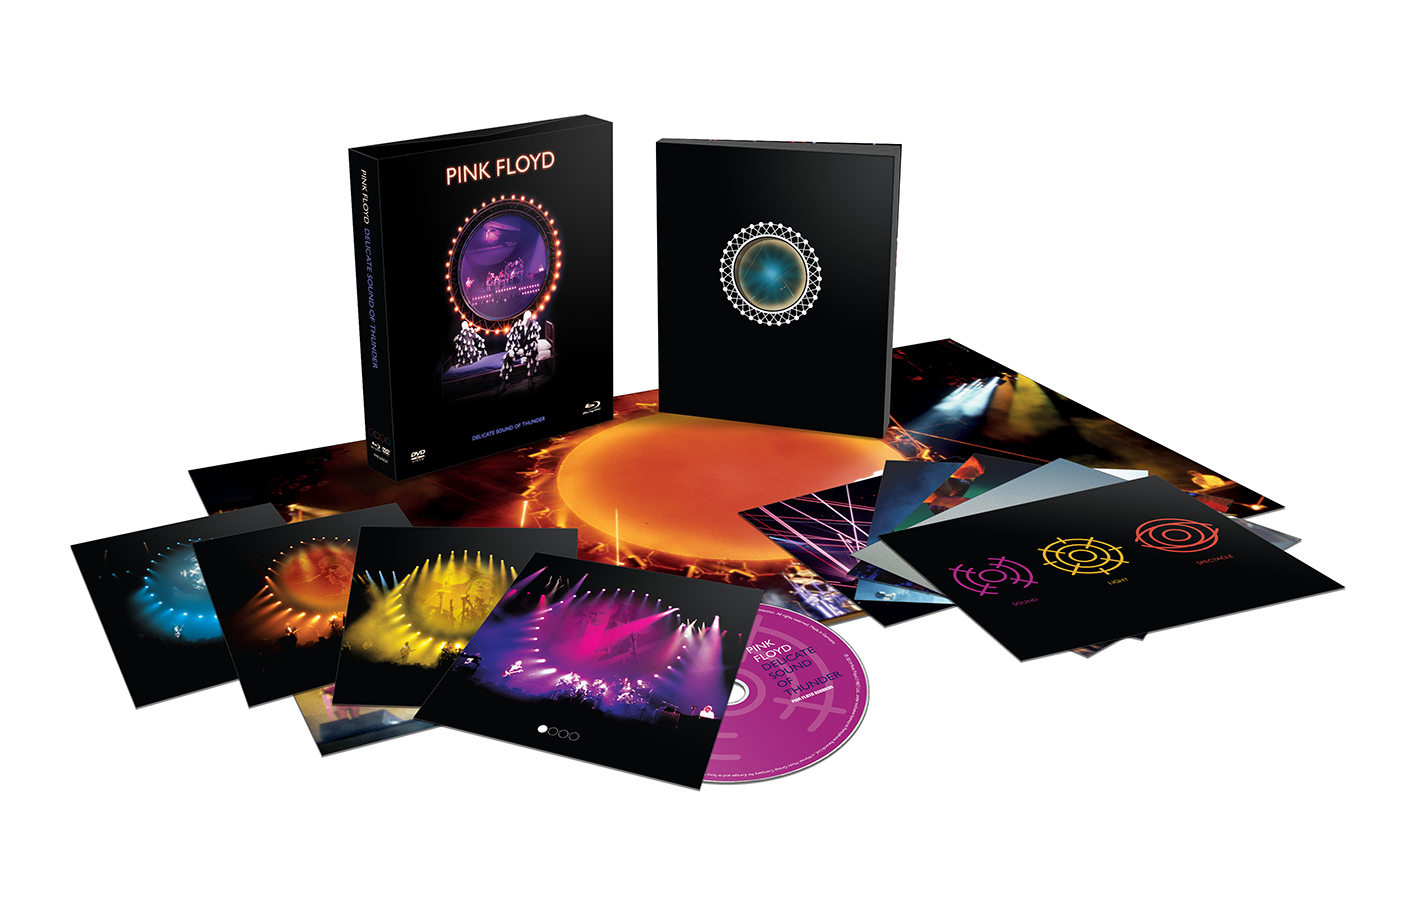 PINK FLOYD Delicate Sound Of Thunder - Restored, Re-edited, Remixed CD boxset.jpg